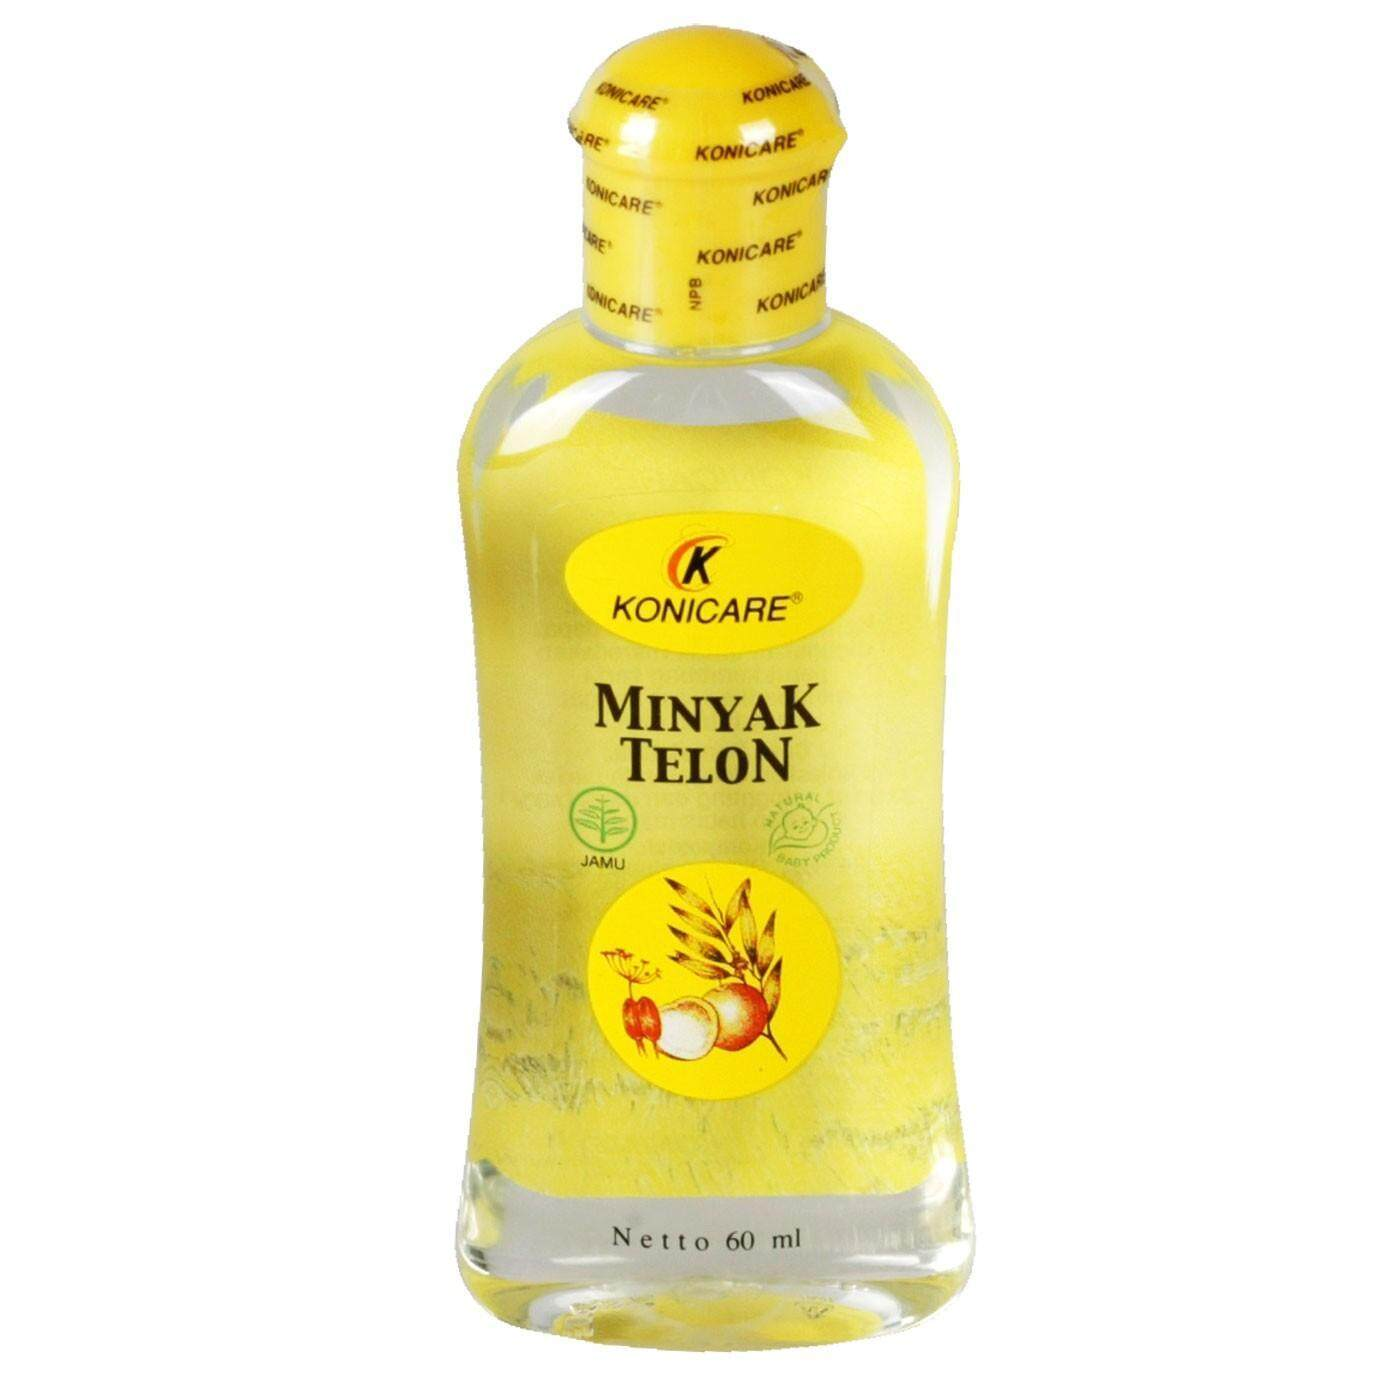 Baby Oils Buy At Best Price In Malaysia Minyak Telon Plus My 90 Ml Konicare Oil 60ml